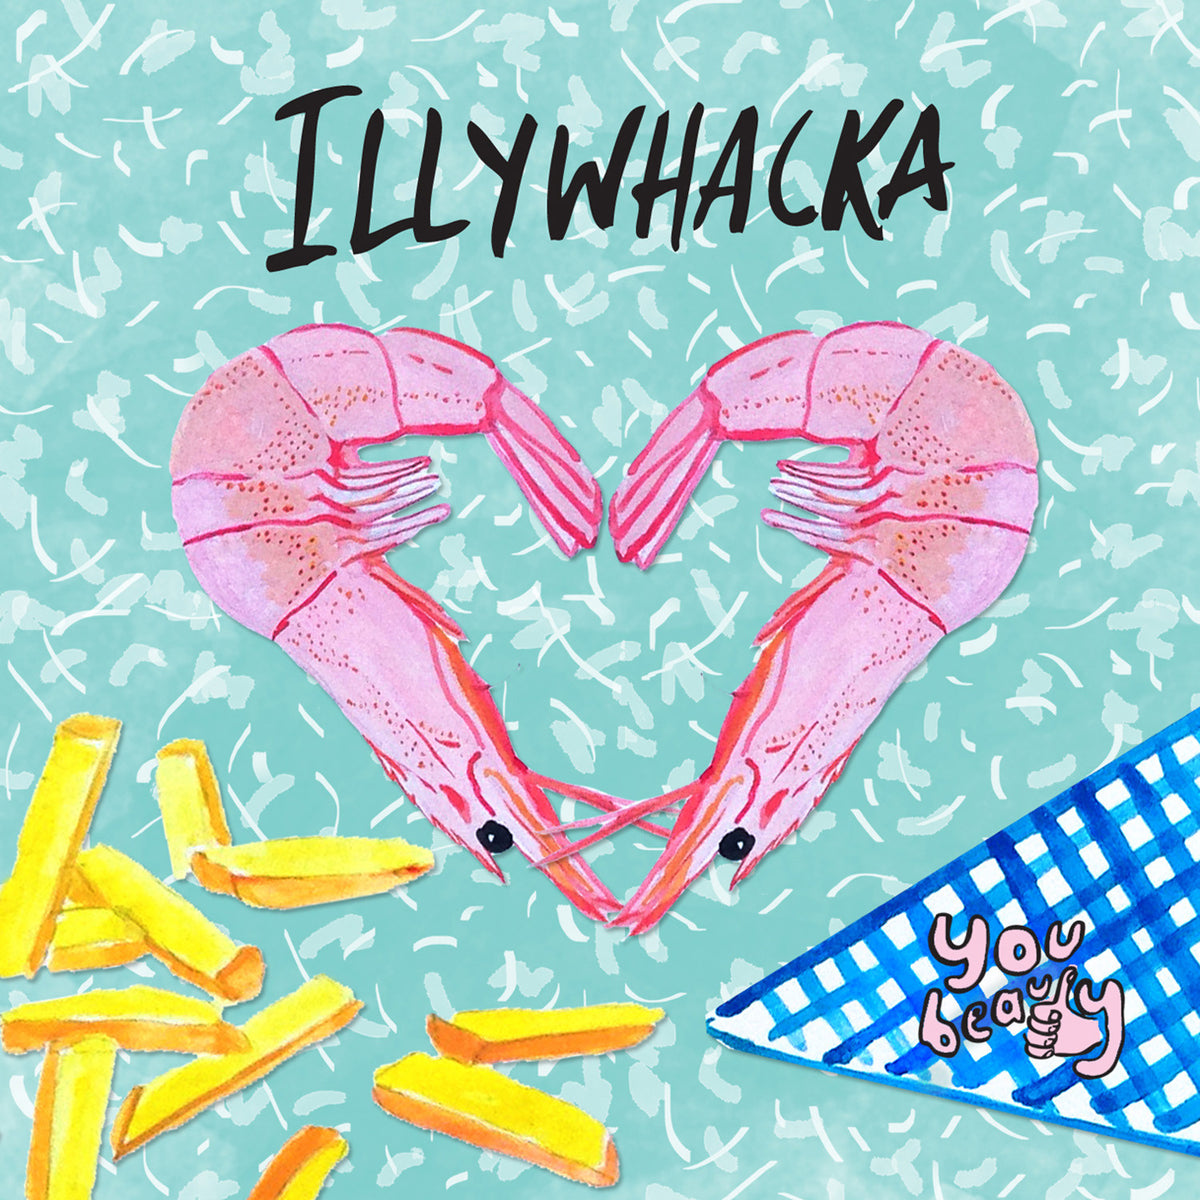 You Beauty - Illywhacka